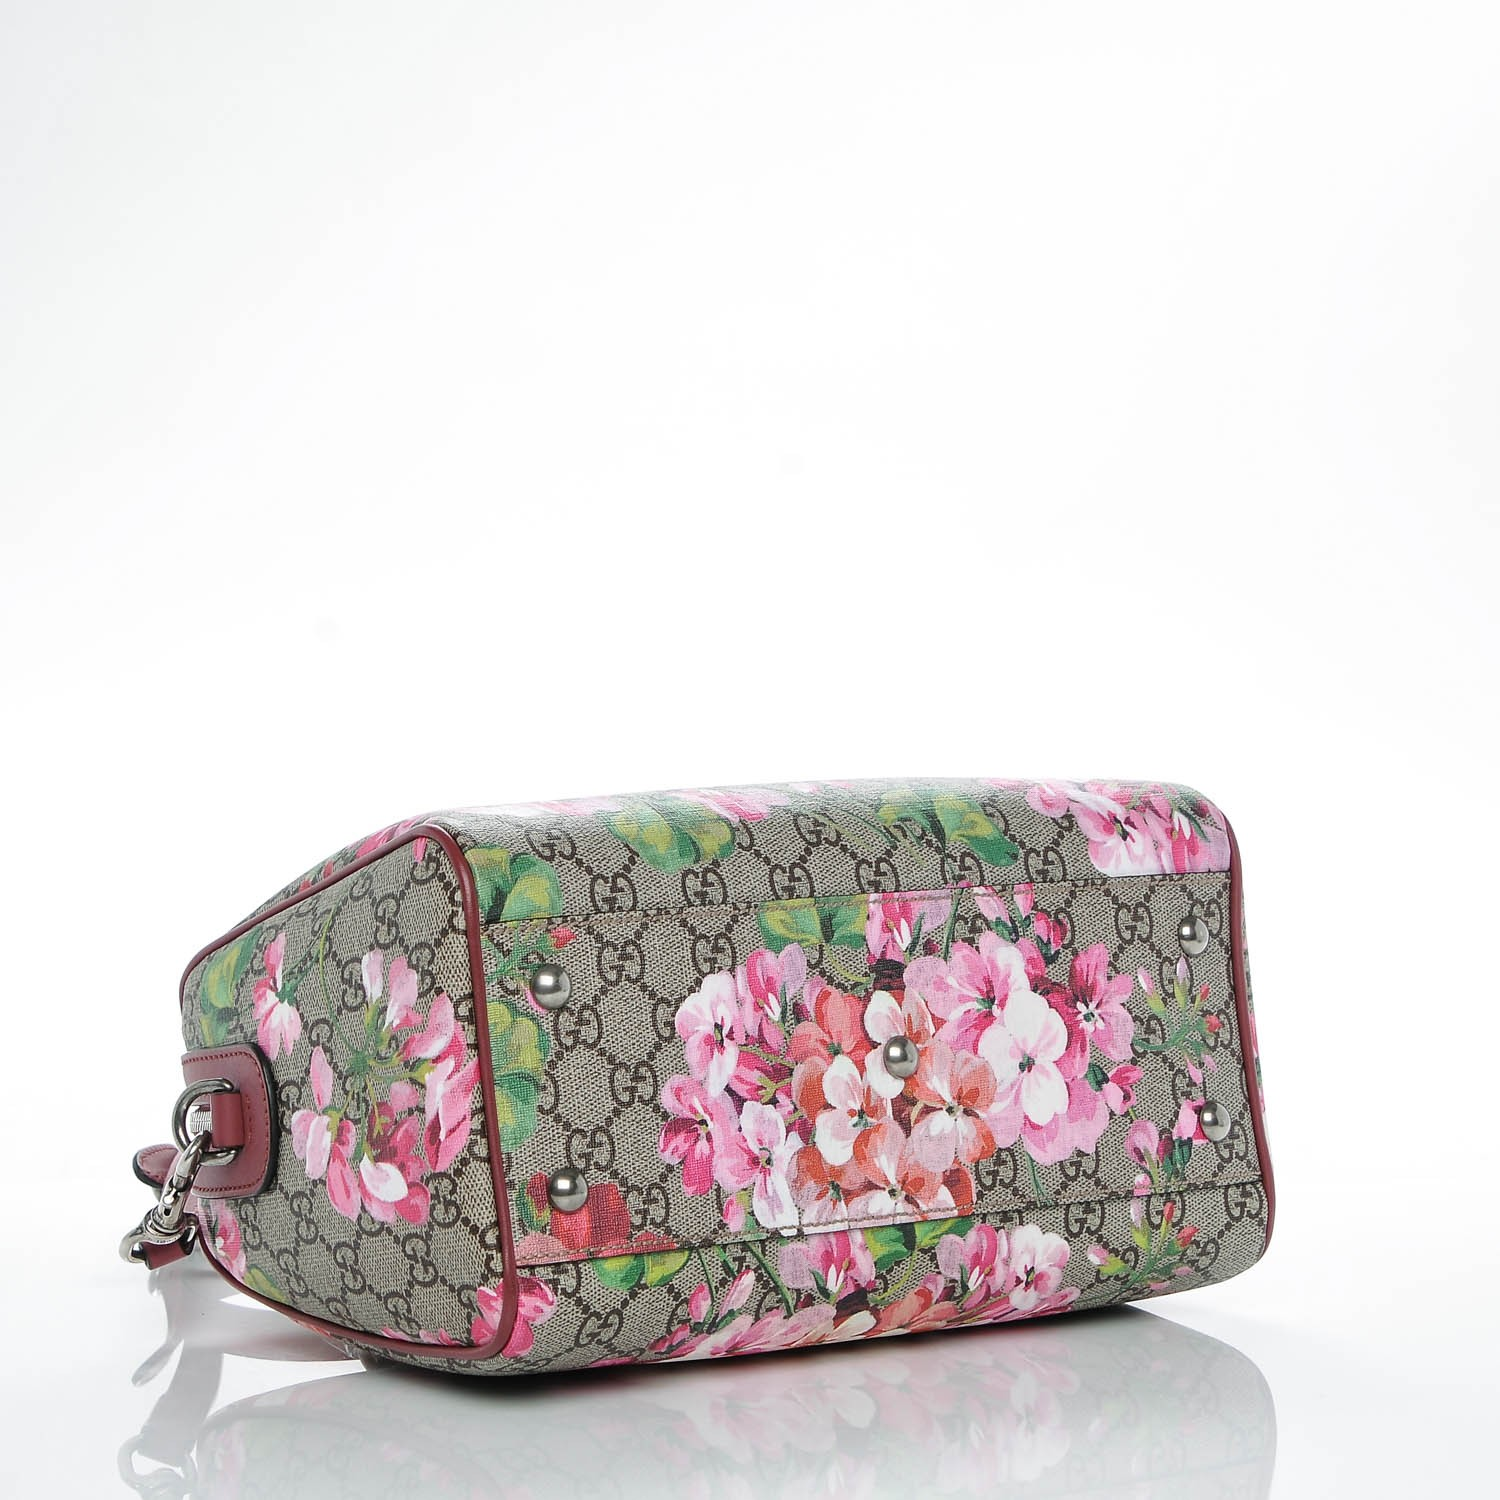 46251b15a6a3d5 GUCCI GG Supreme Monogram Blooms Small Top Handle Bag Antique Rose 185855